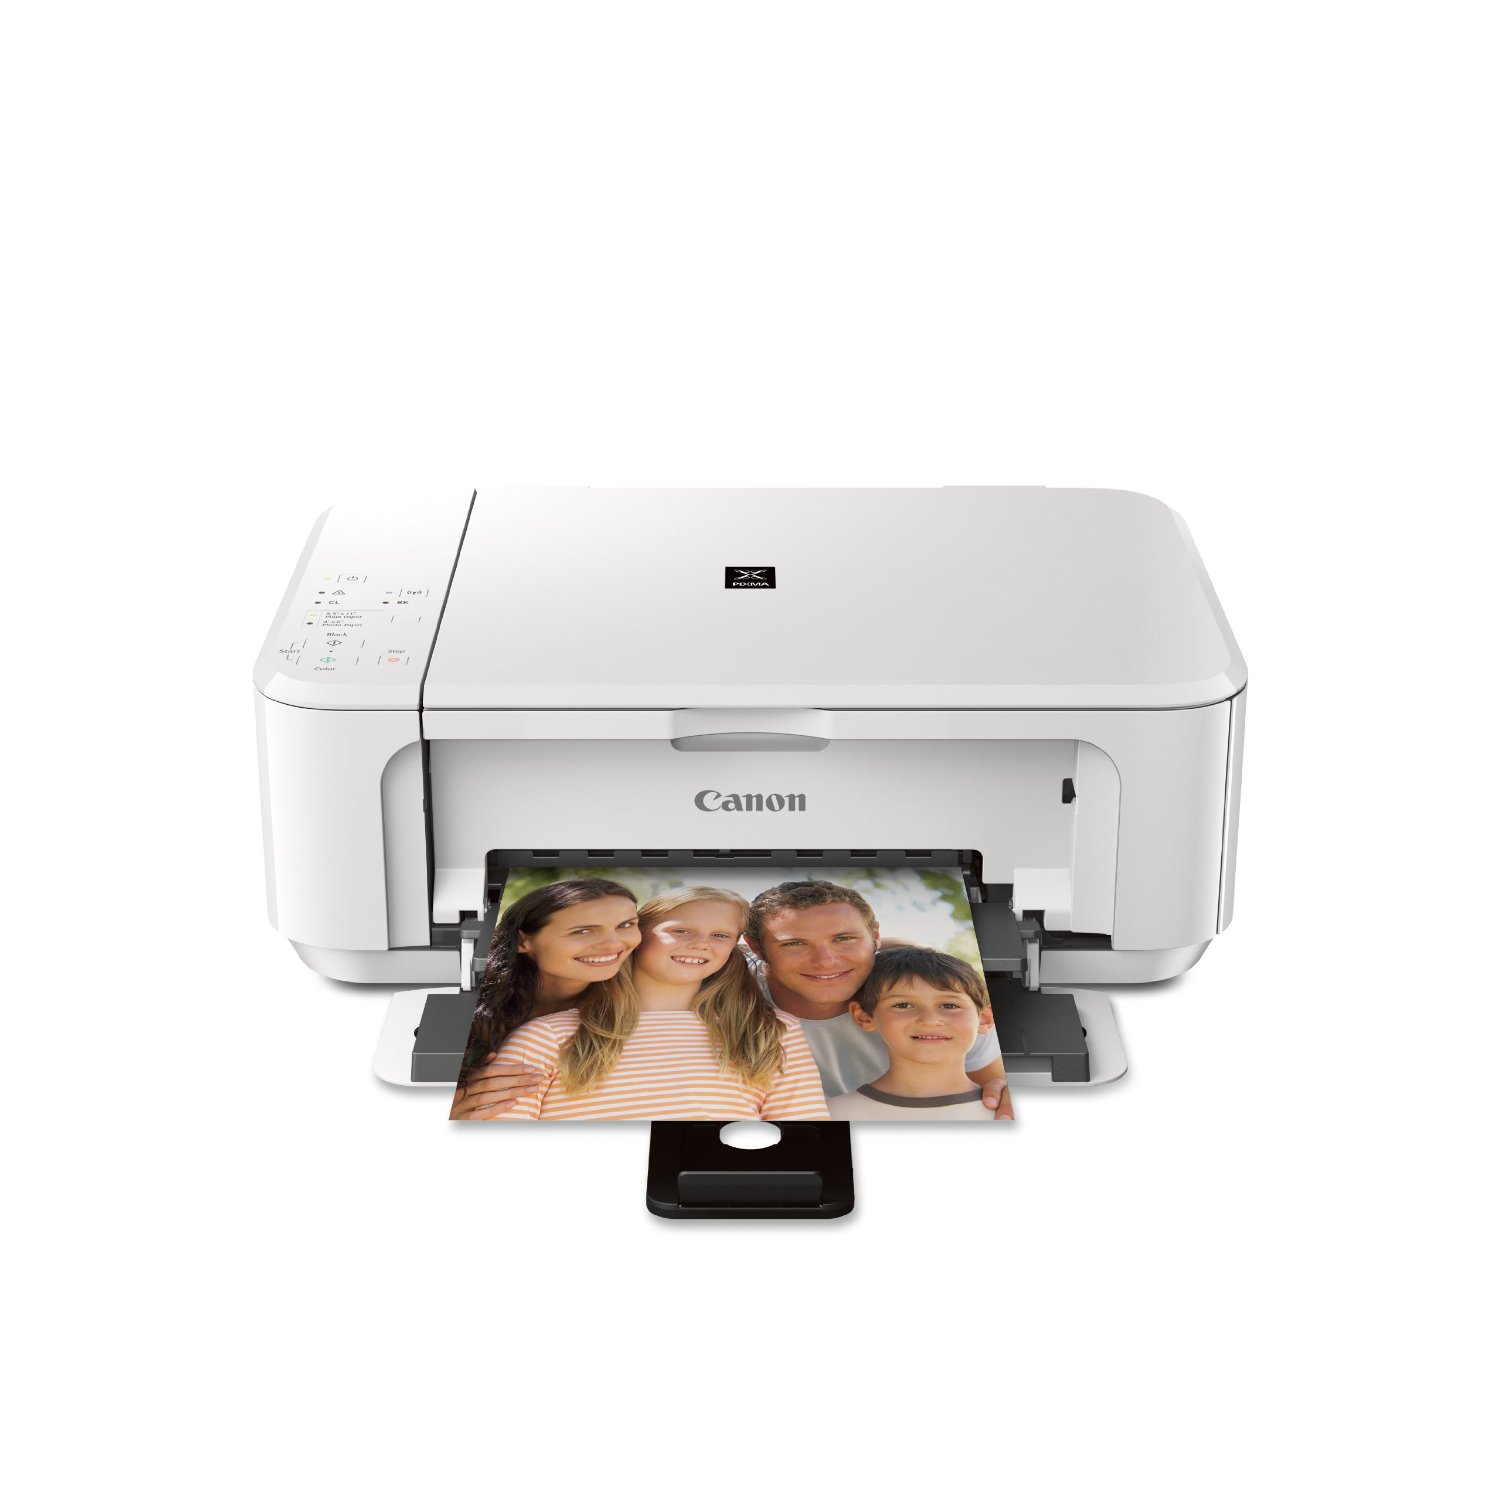 Kmart Photo Prints Photo Printers Buy Photo Printers In Tvs And Electronics At